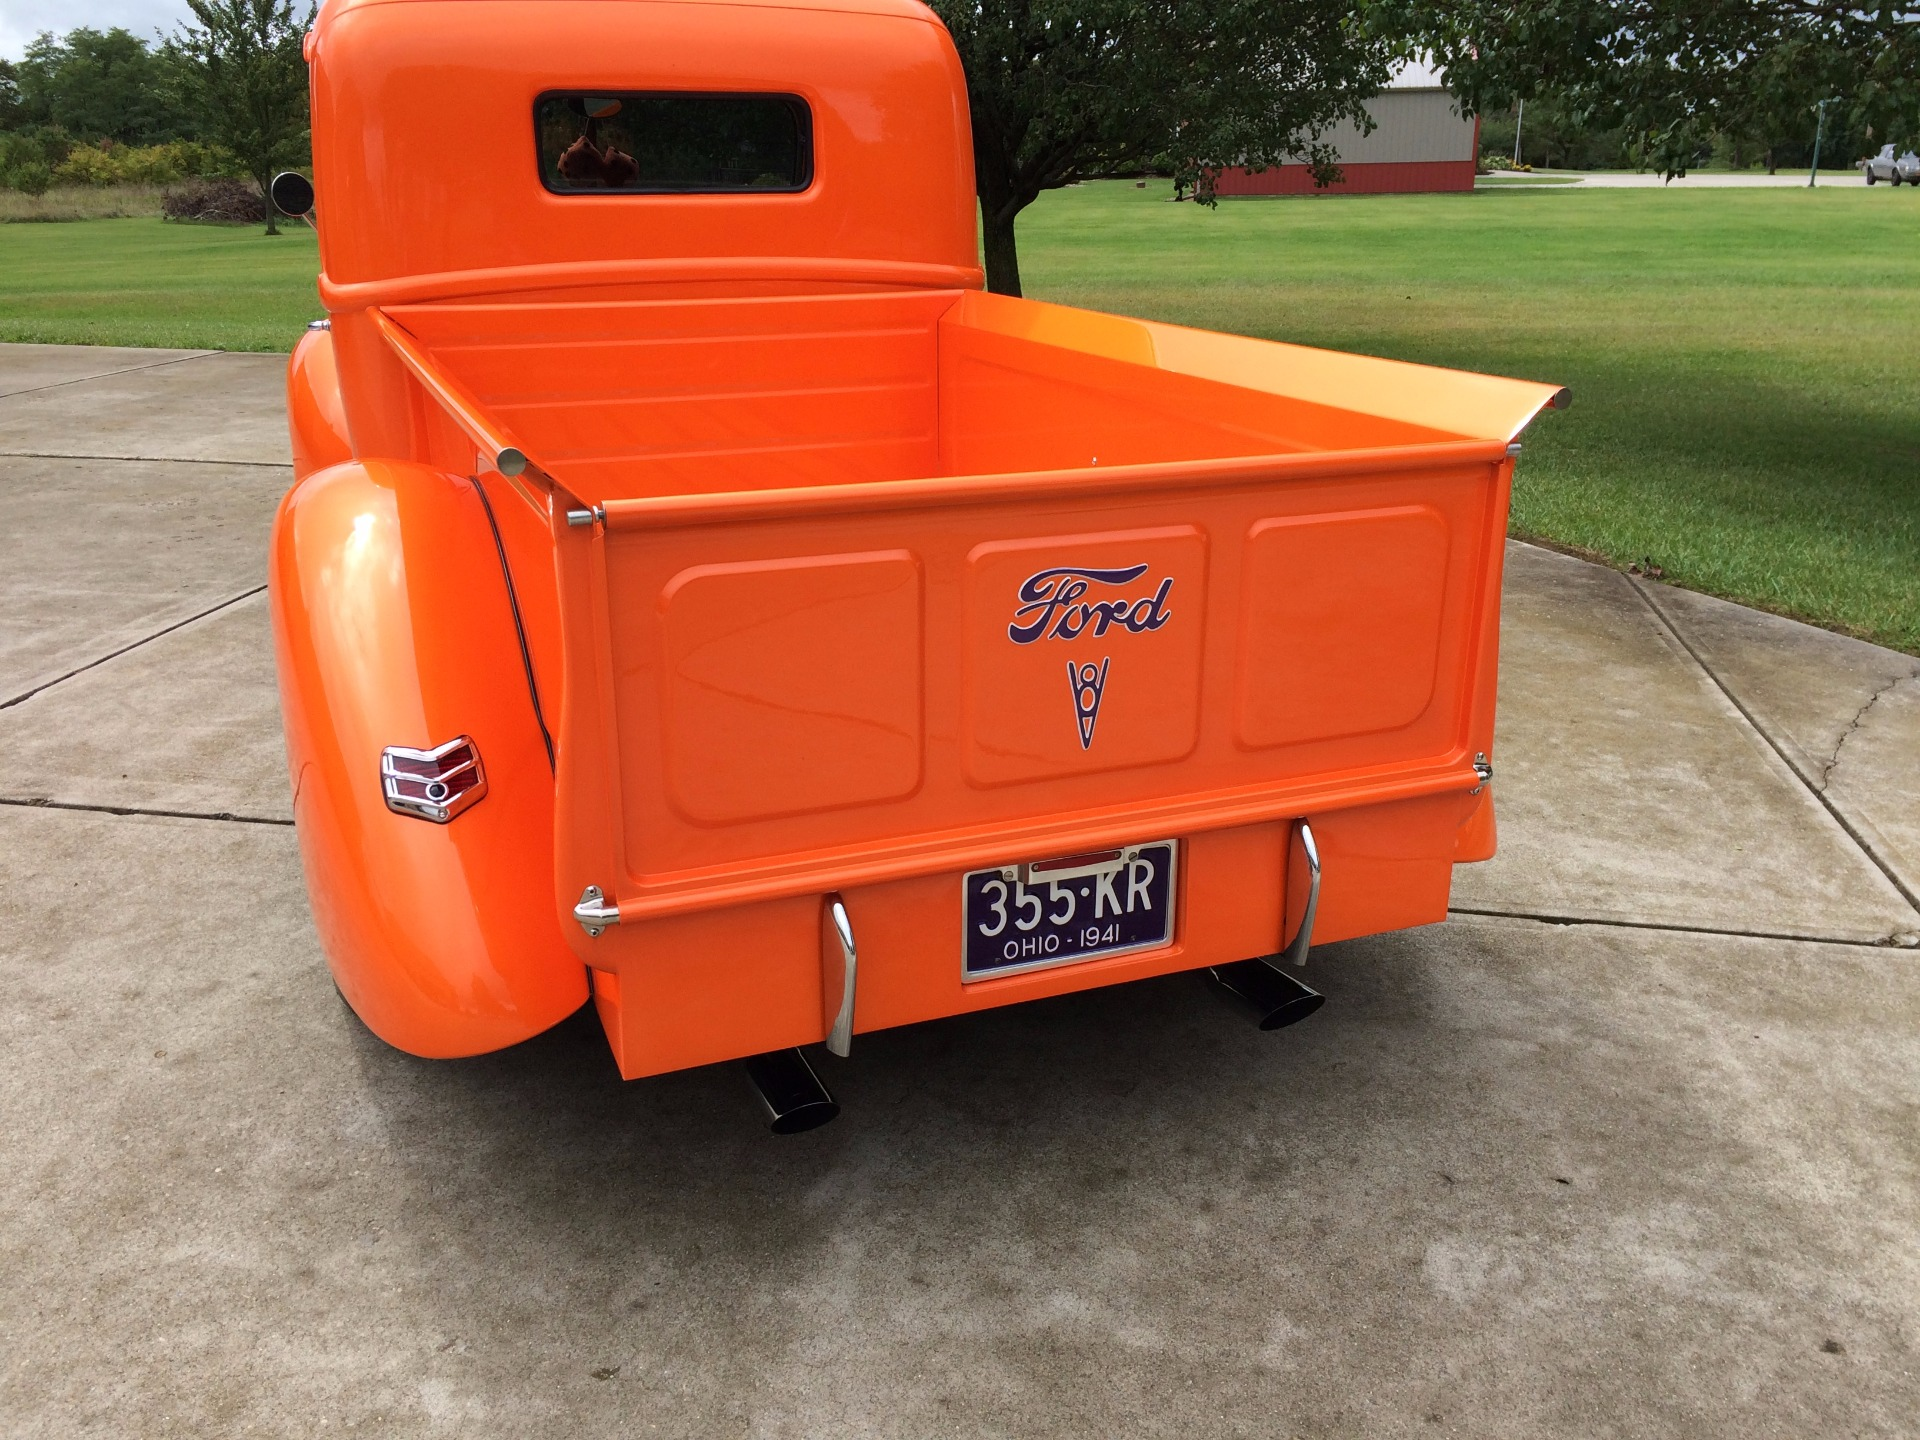 Used 1941 Ford Half Ton Pickup | Cornelius NC & 1941 Ford Half Ton Pickup Stock # A190 for sale near Cornelius NC ... markmcfarlin.com